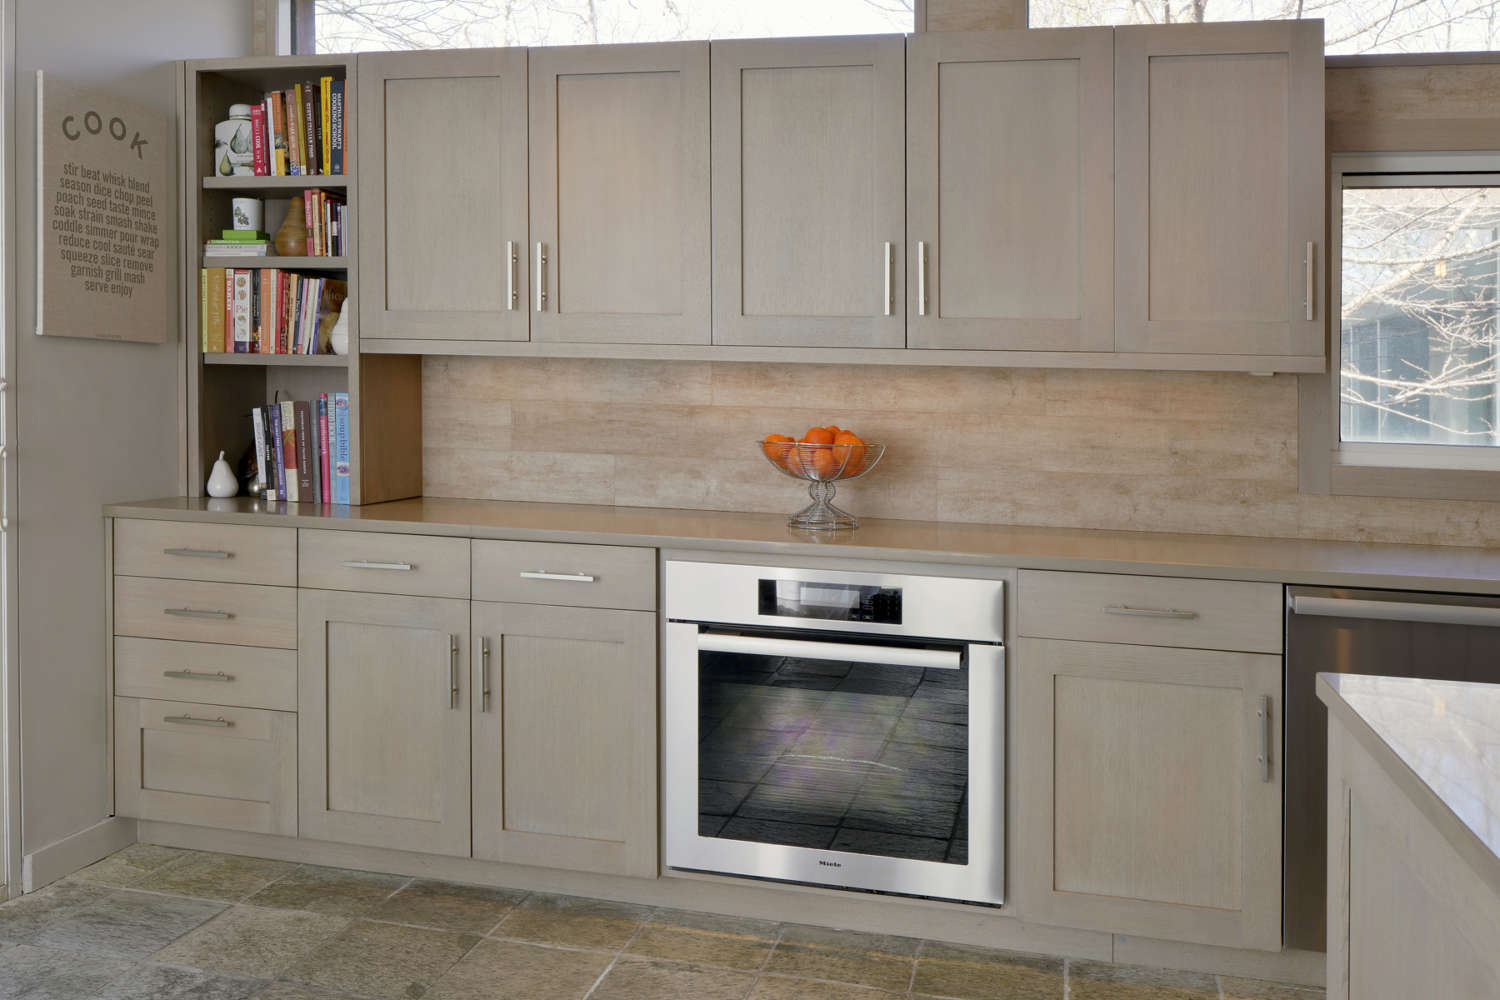 Rustic kitchen features fully custom frameless, shaker style Bilotta Cabinetry in rift cut white oak with Driftwood stain, neutral quartz counter and soft travertine backsplash with complementary floor tile. Design by Danielle Florie of Bilotta Kitchens.